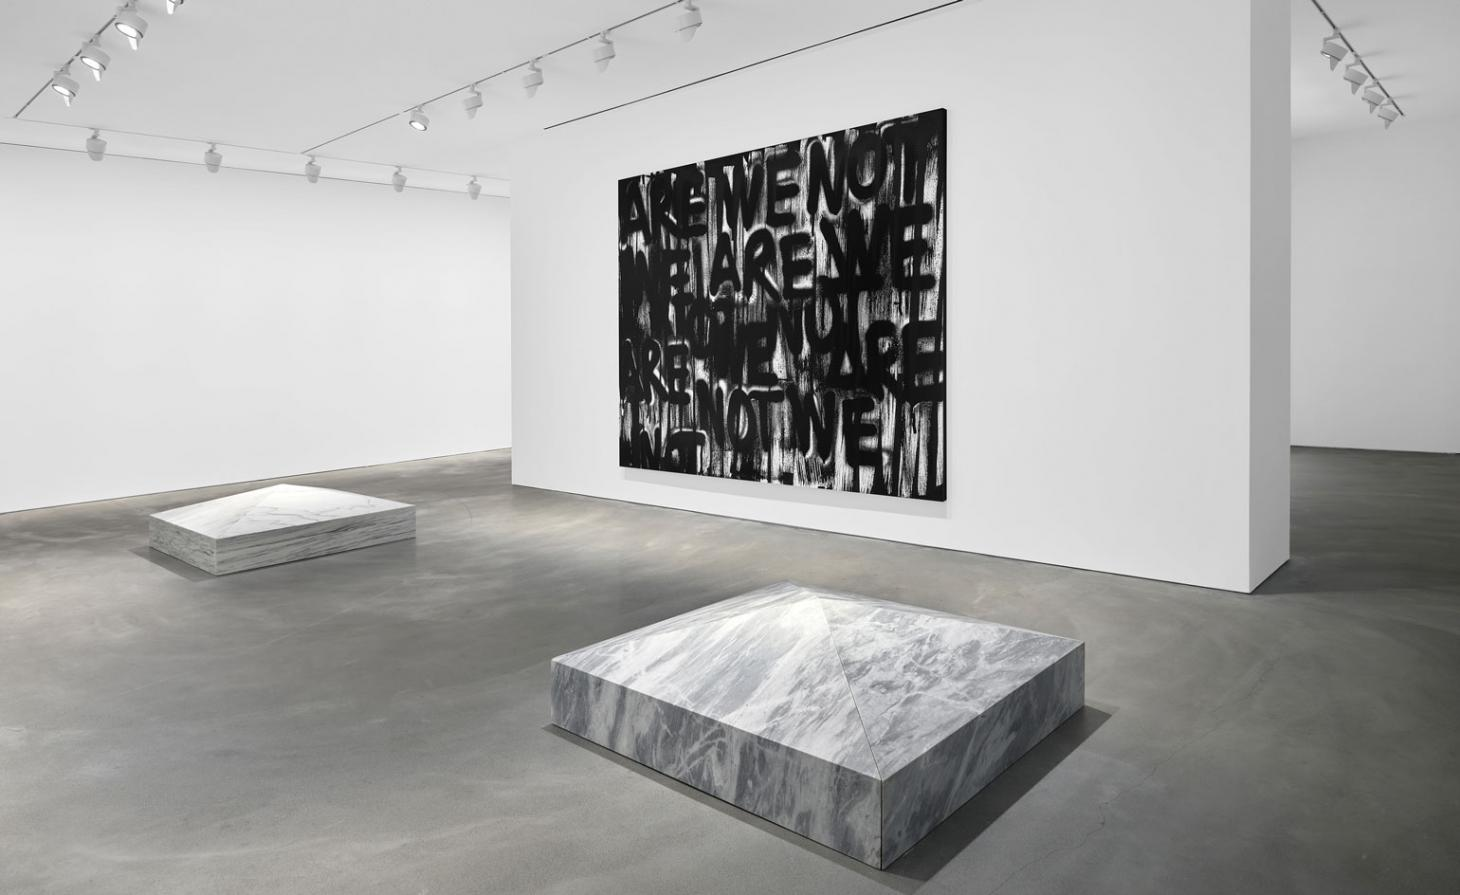 Black and white image of. gallery with marble on the floor and a graffiti image